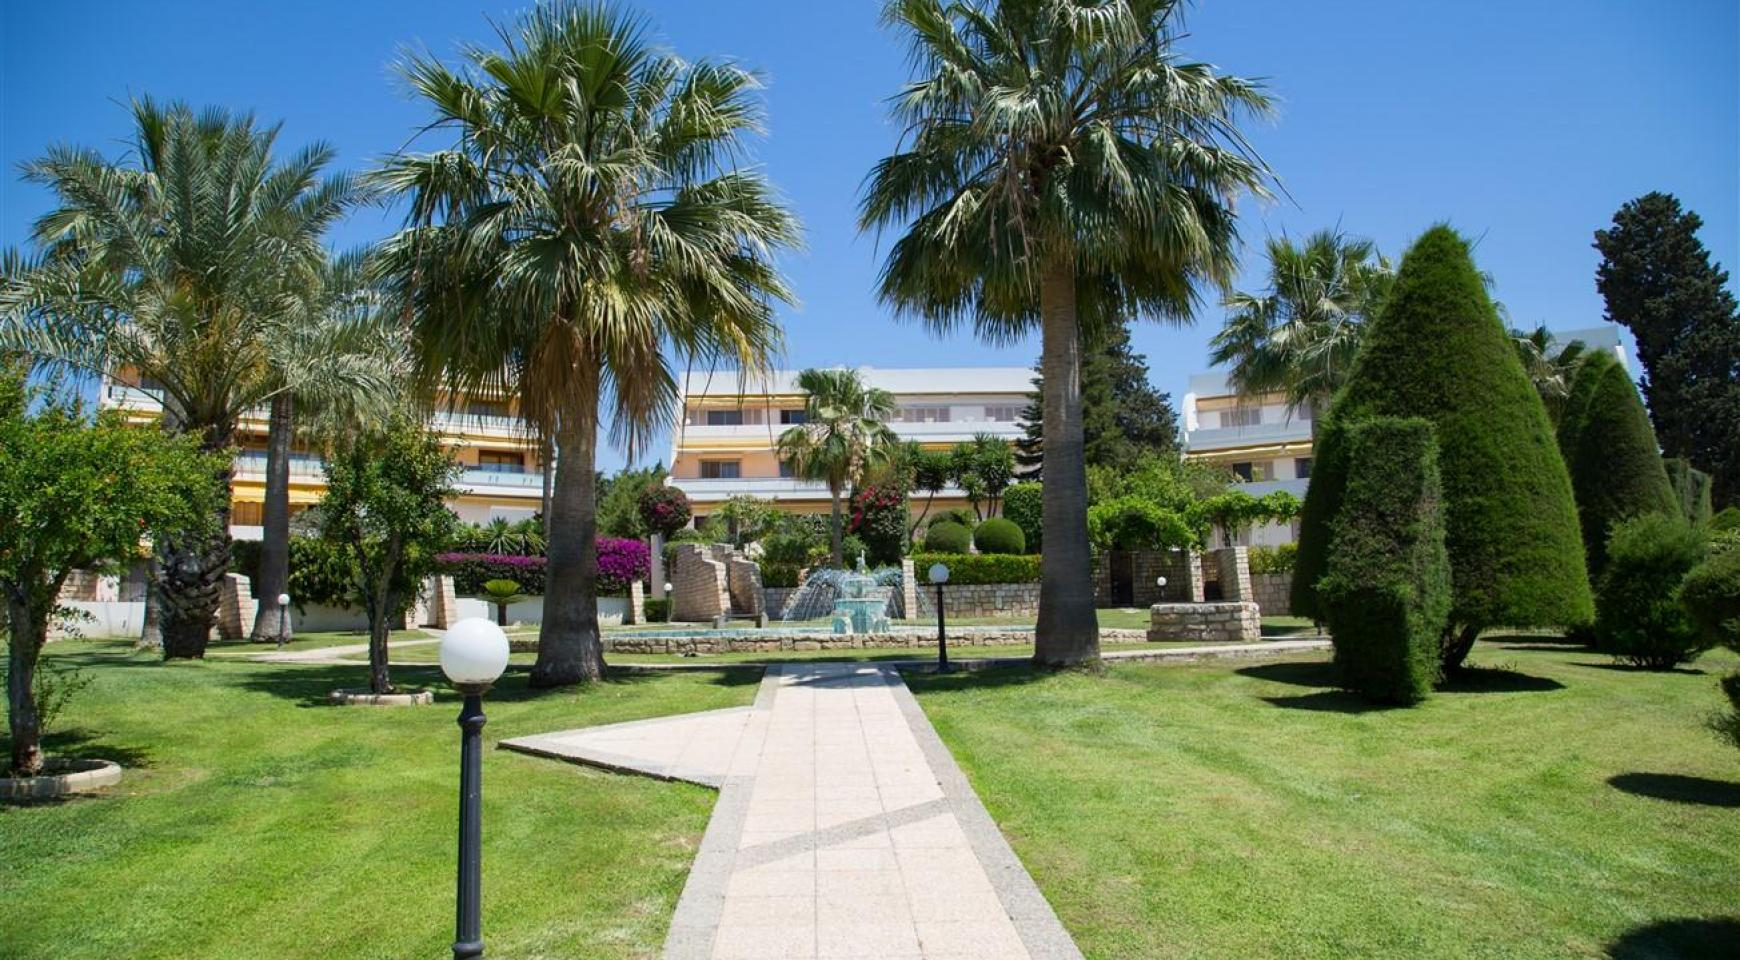 3 Bedroom Apartment in Thera Complex by the Sea - 5